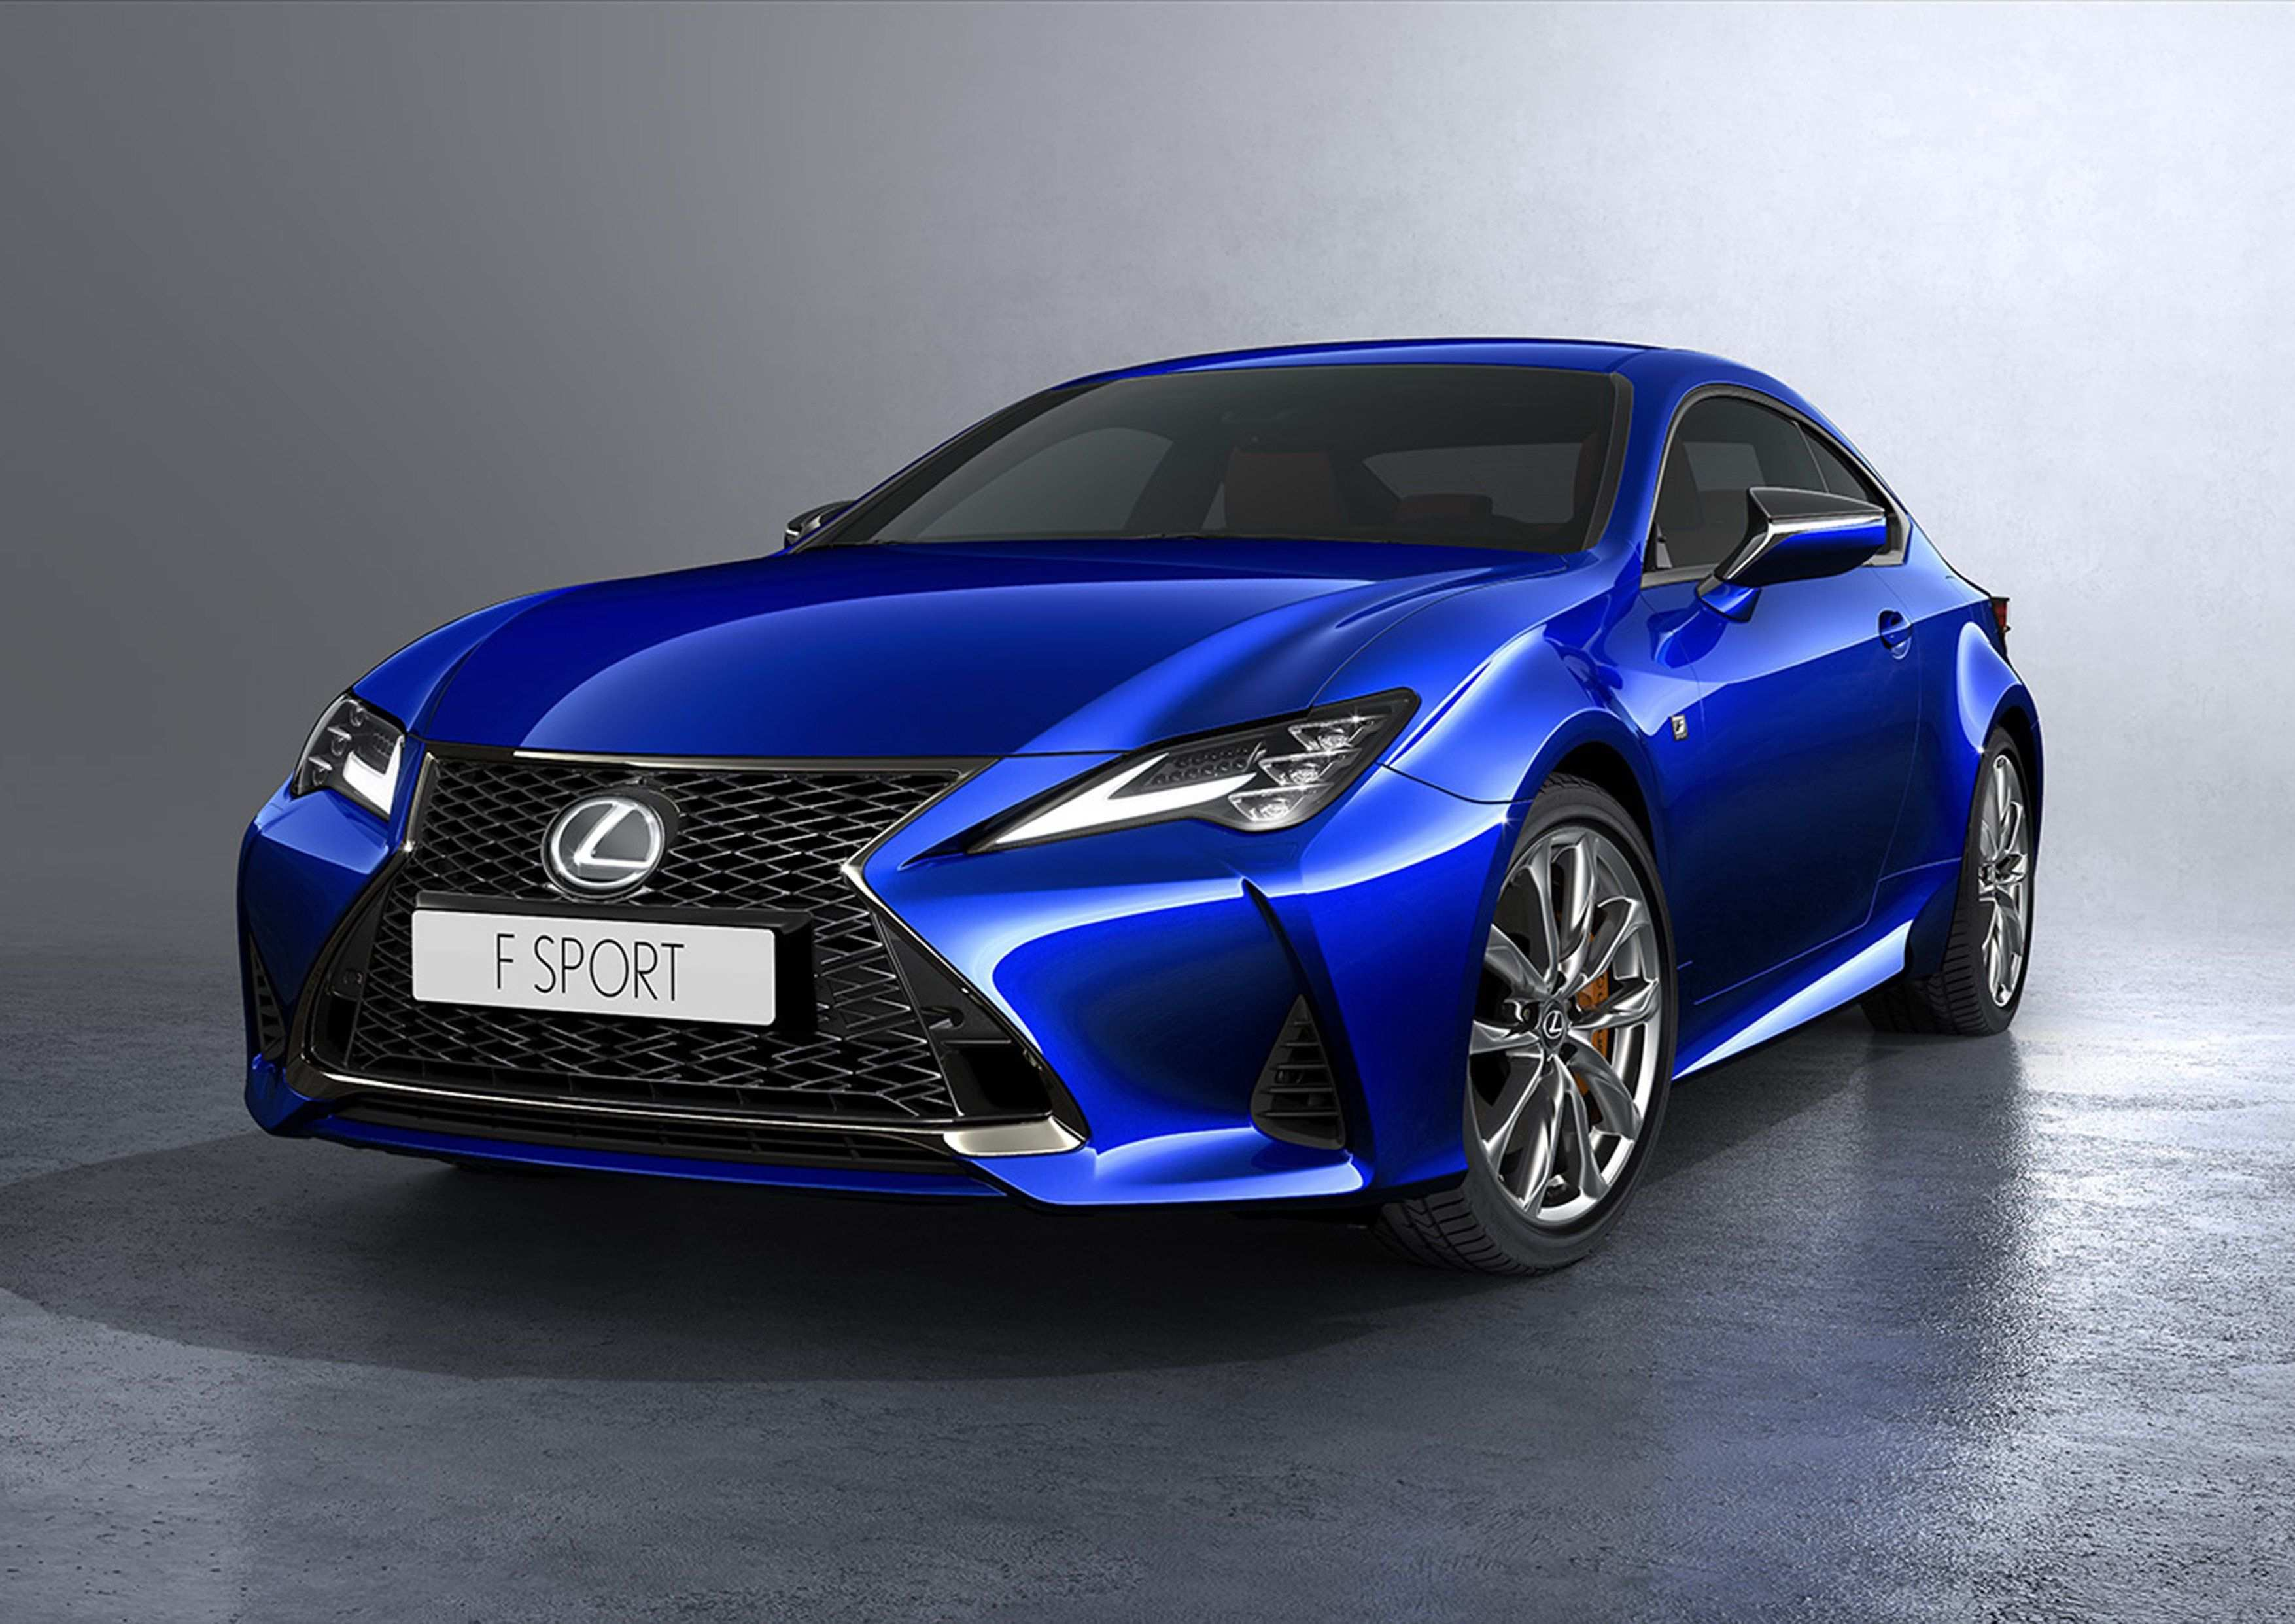 59 Gallery of When Do The 2020 Lexus Cars Come Out Spesification by When Do The 2020 Lexus Cars Come Out